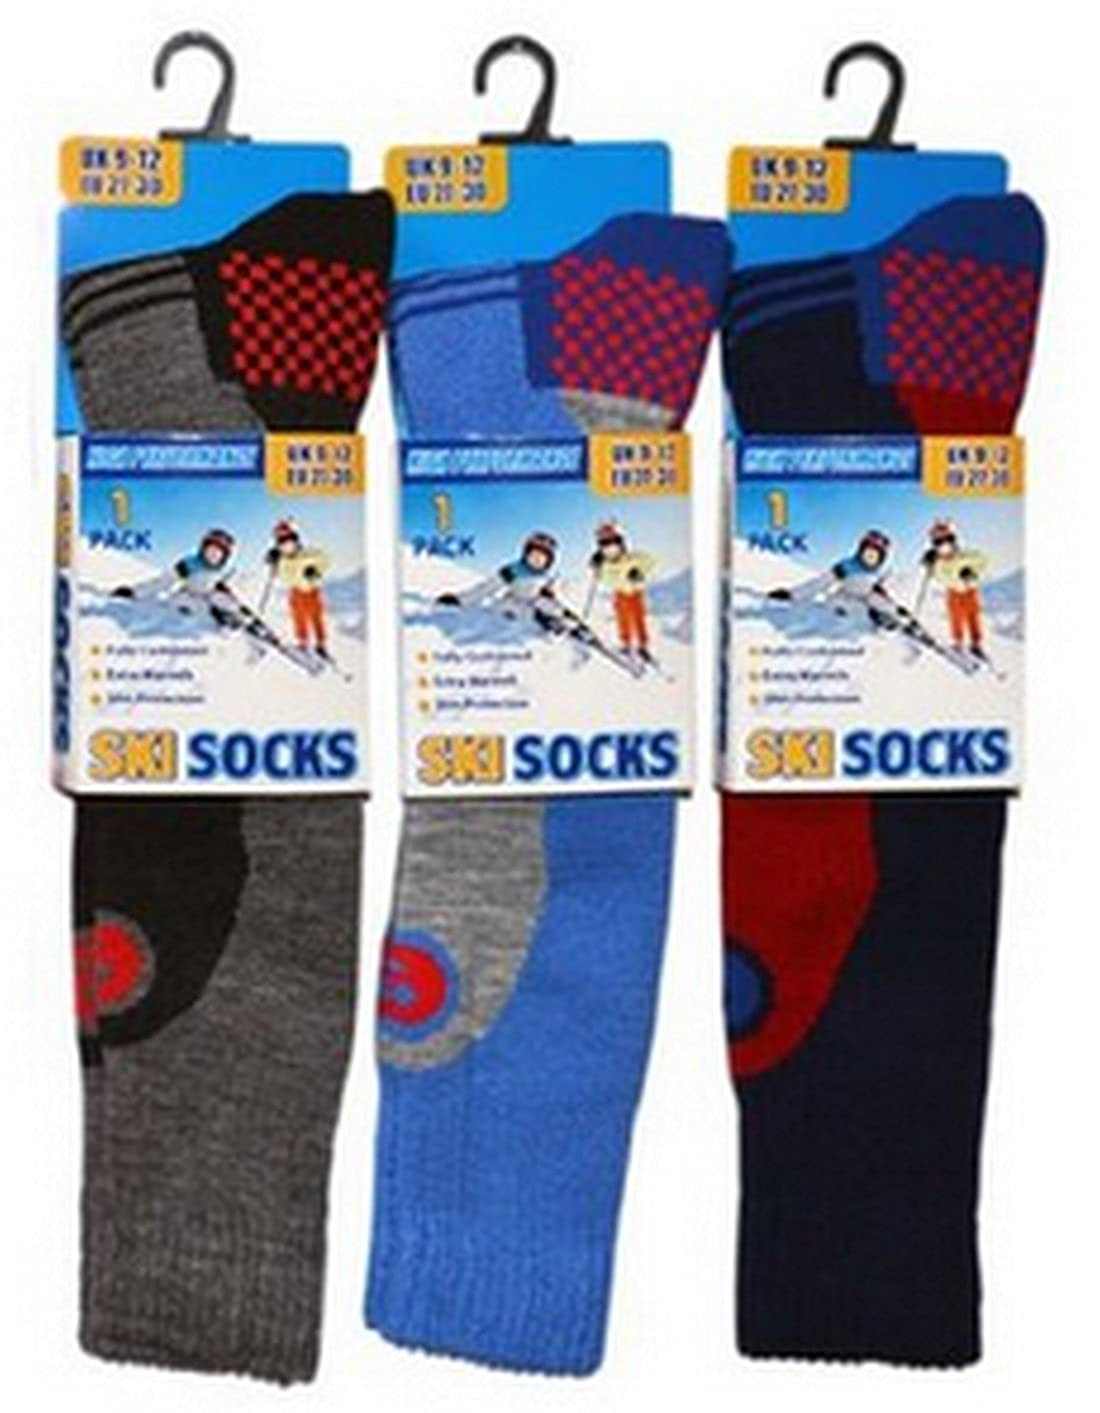 3 Pack Childrens/Boys High Performance Ski Socks With Extra Cushioning, Shin Protection, Assorted Colours, UK: 9-12, EUR: 27-30